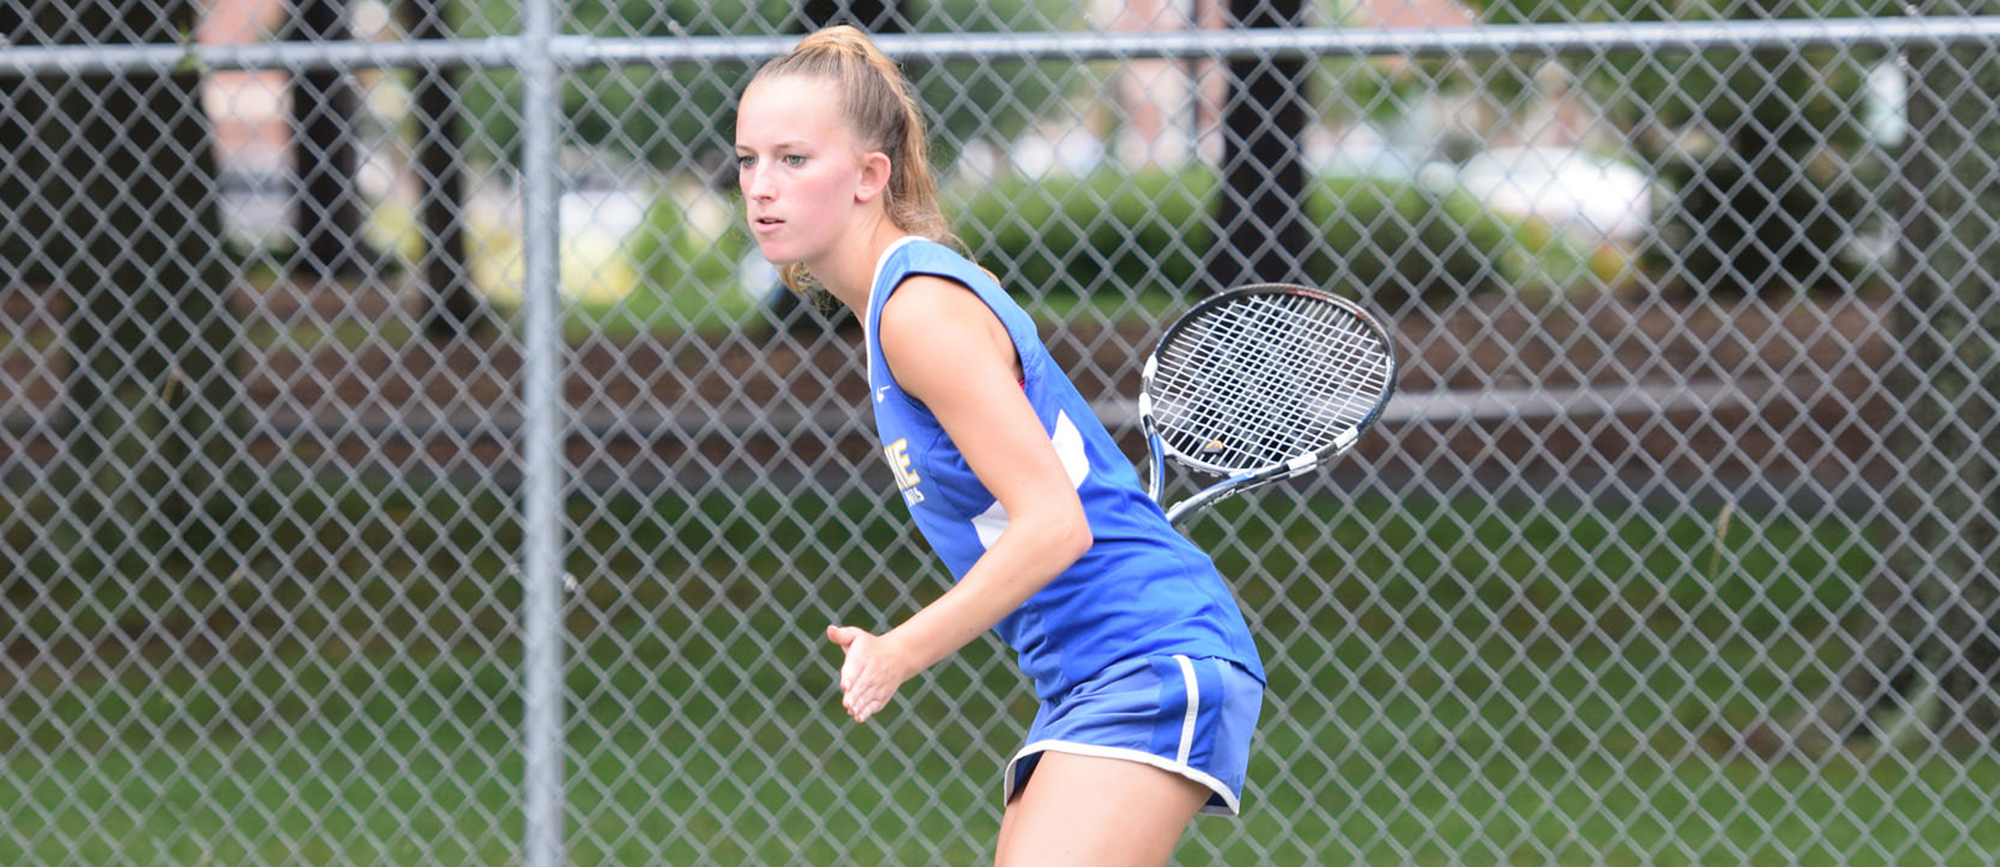 Morgan Schrader posted a 6-3, 6-3 win at No. 2 singles against Anne Carsey of Gordon College on Wednesday. (Photo by Rachael Margossian)